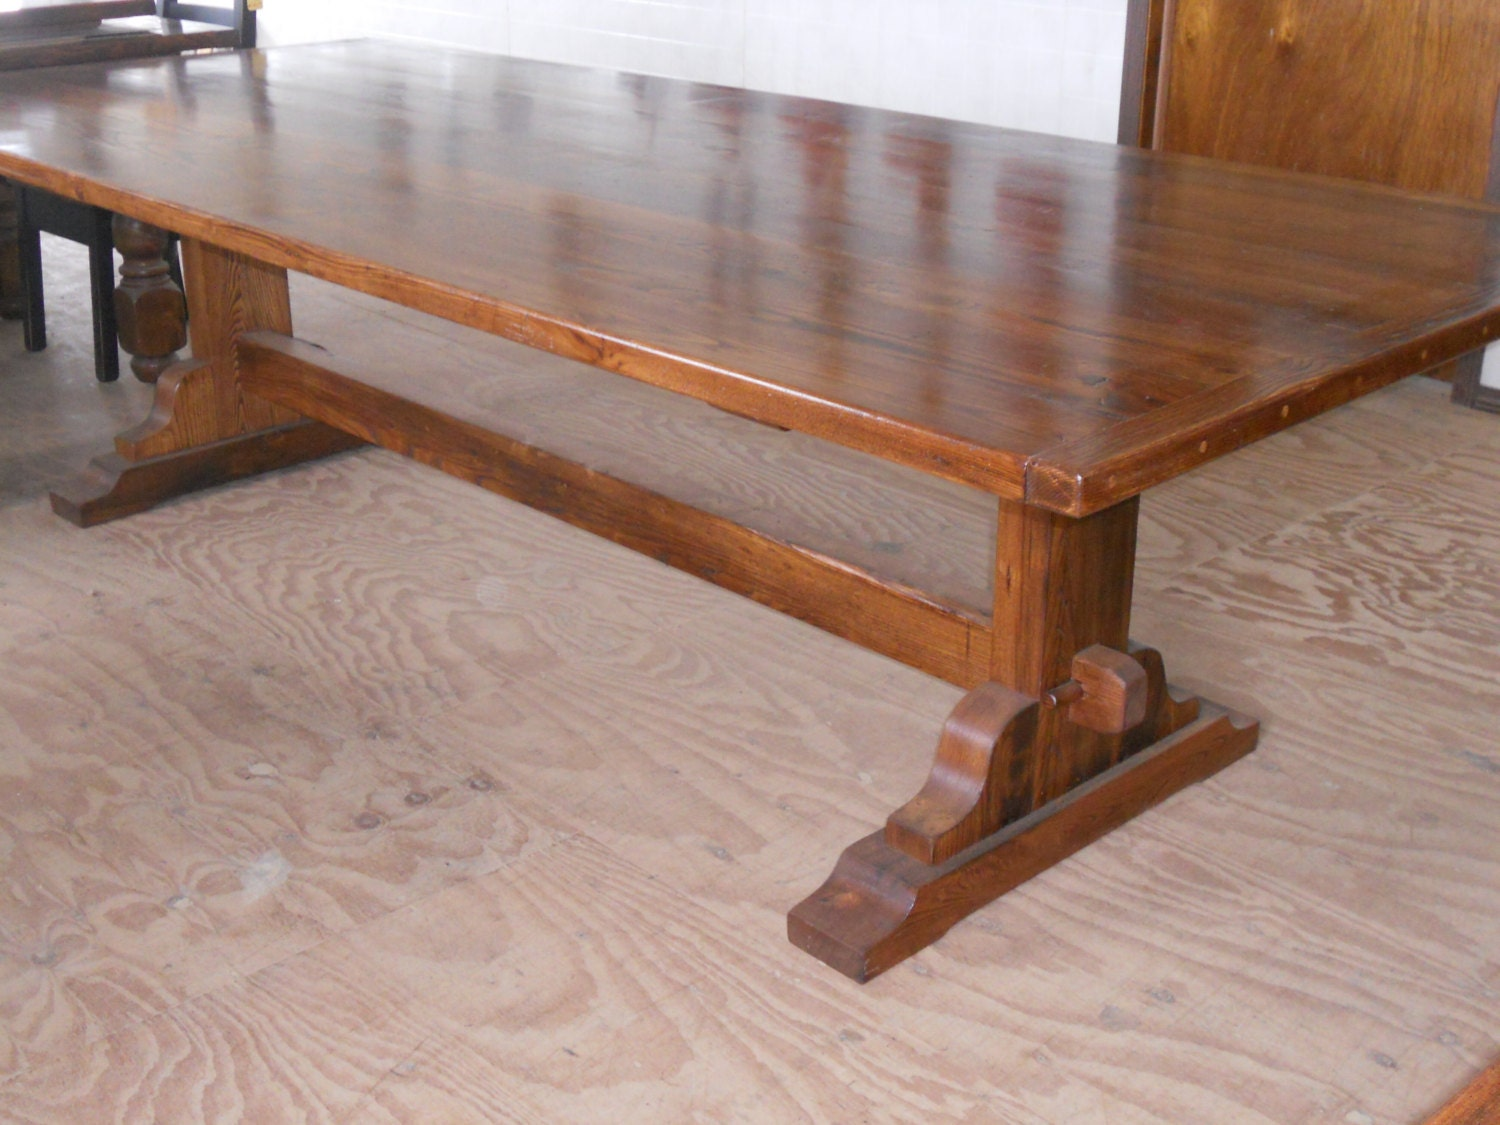 Reclaimed barn wood furniture chestnut trestle by valentinodesigns - Kitchen table reclaimed wood ...